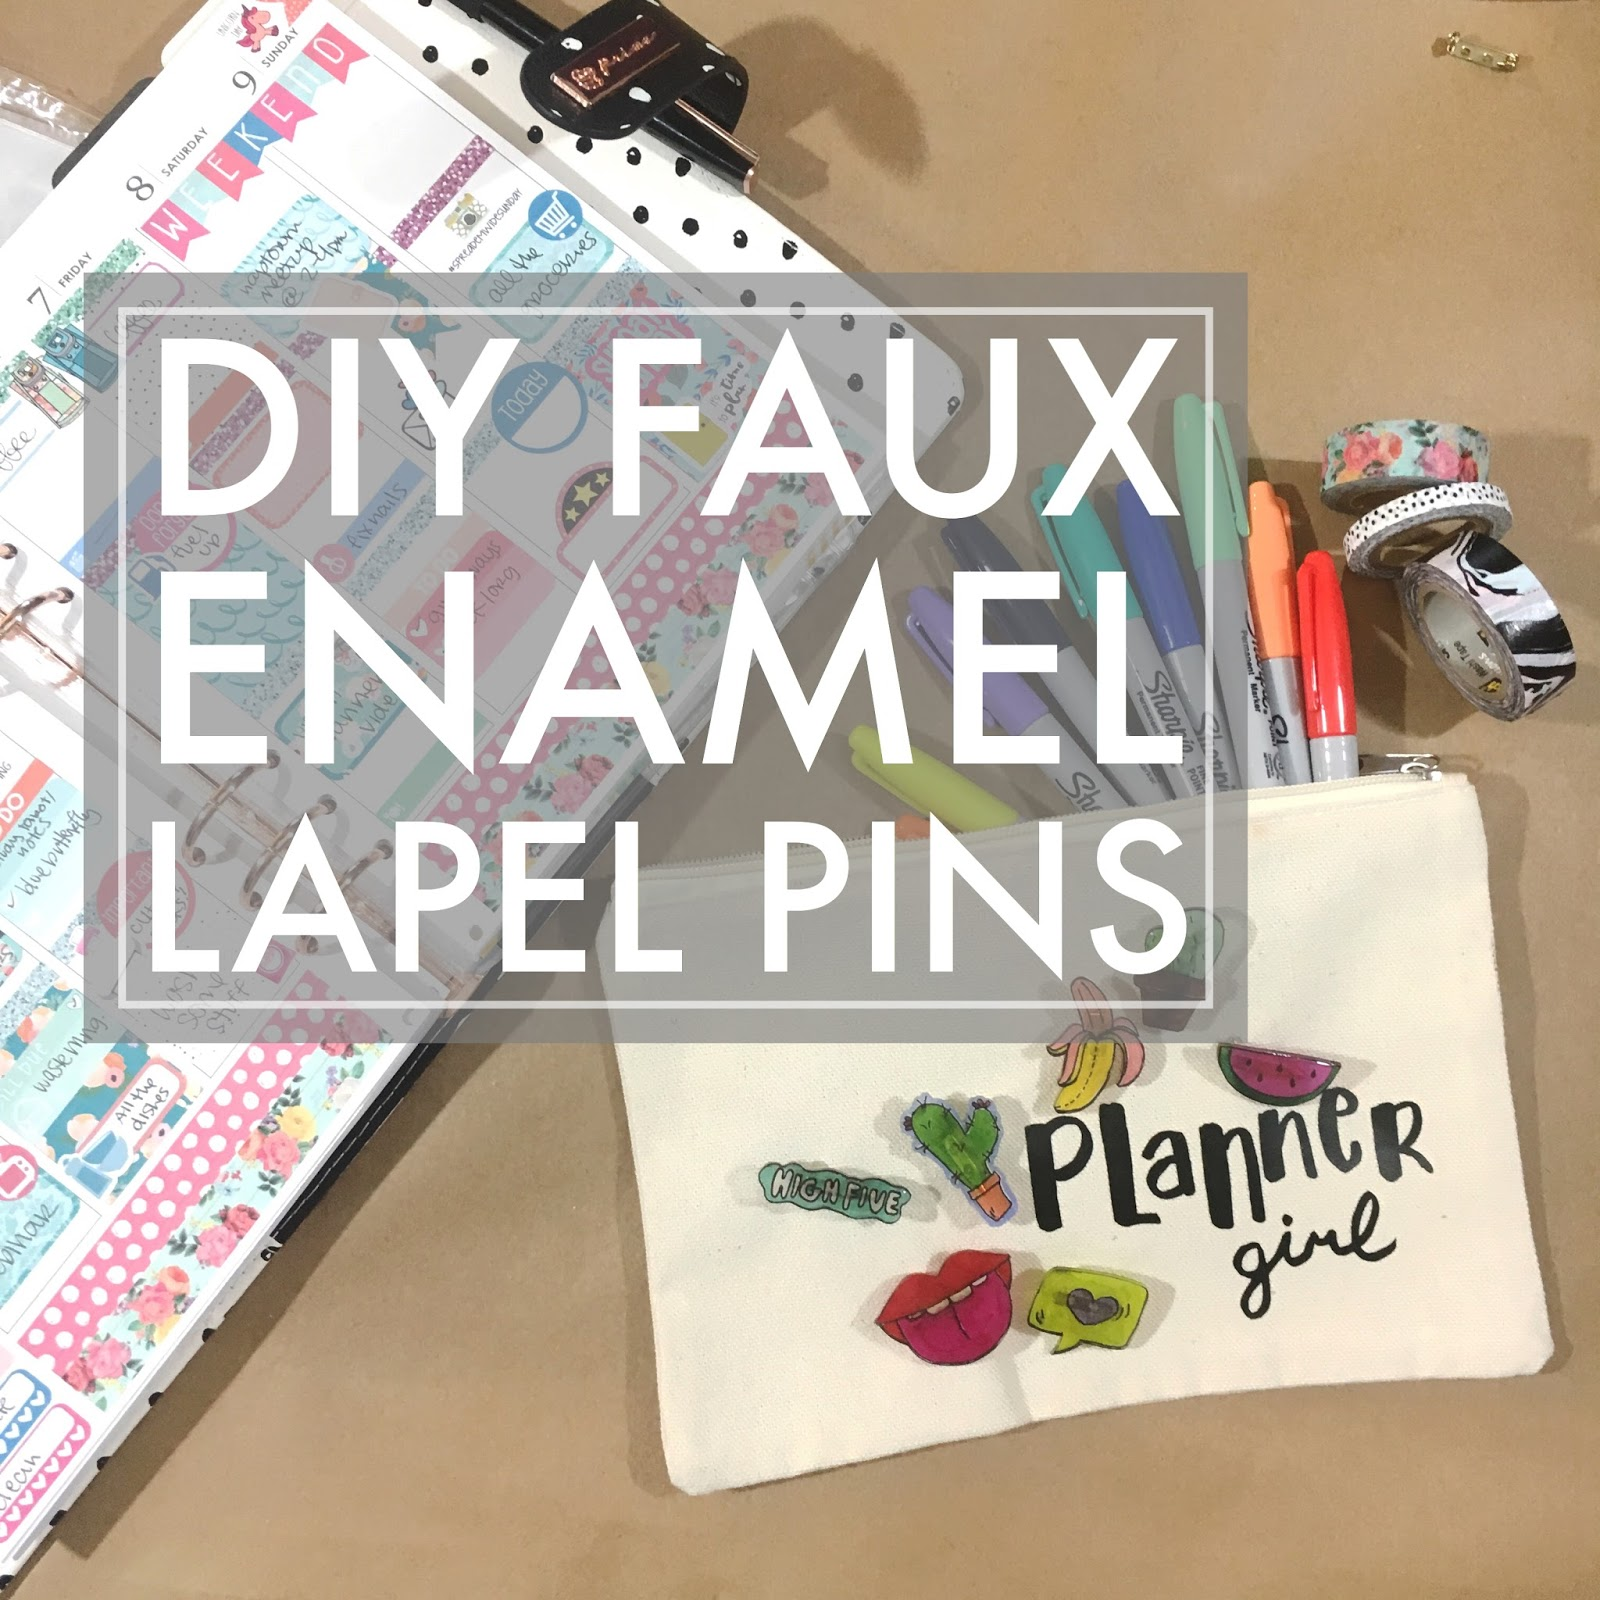 Since I Canu0027t Afford Every Single Pin Out There And Iu0027m 100% Into DIYing  Anything I Can, Iu0027m Excited To Share With You A Fun And Easy Way To Make  Cute Pins ...